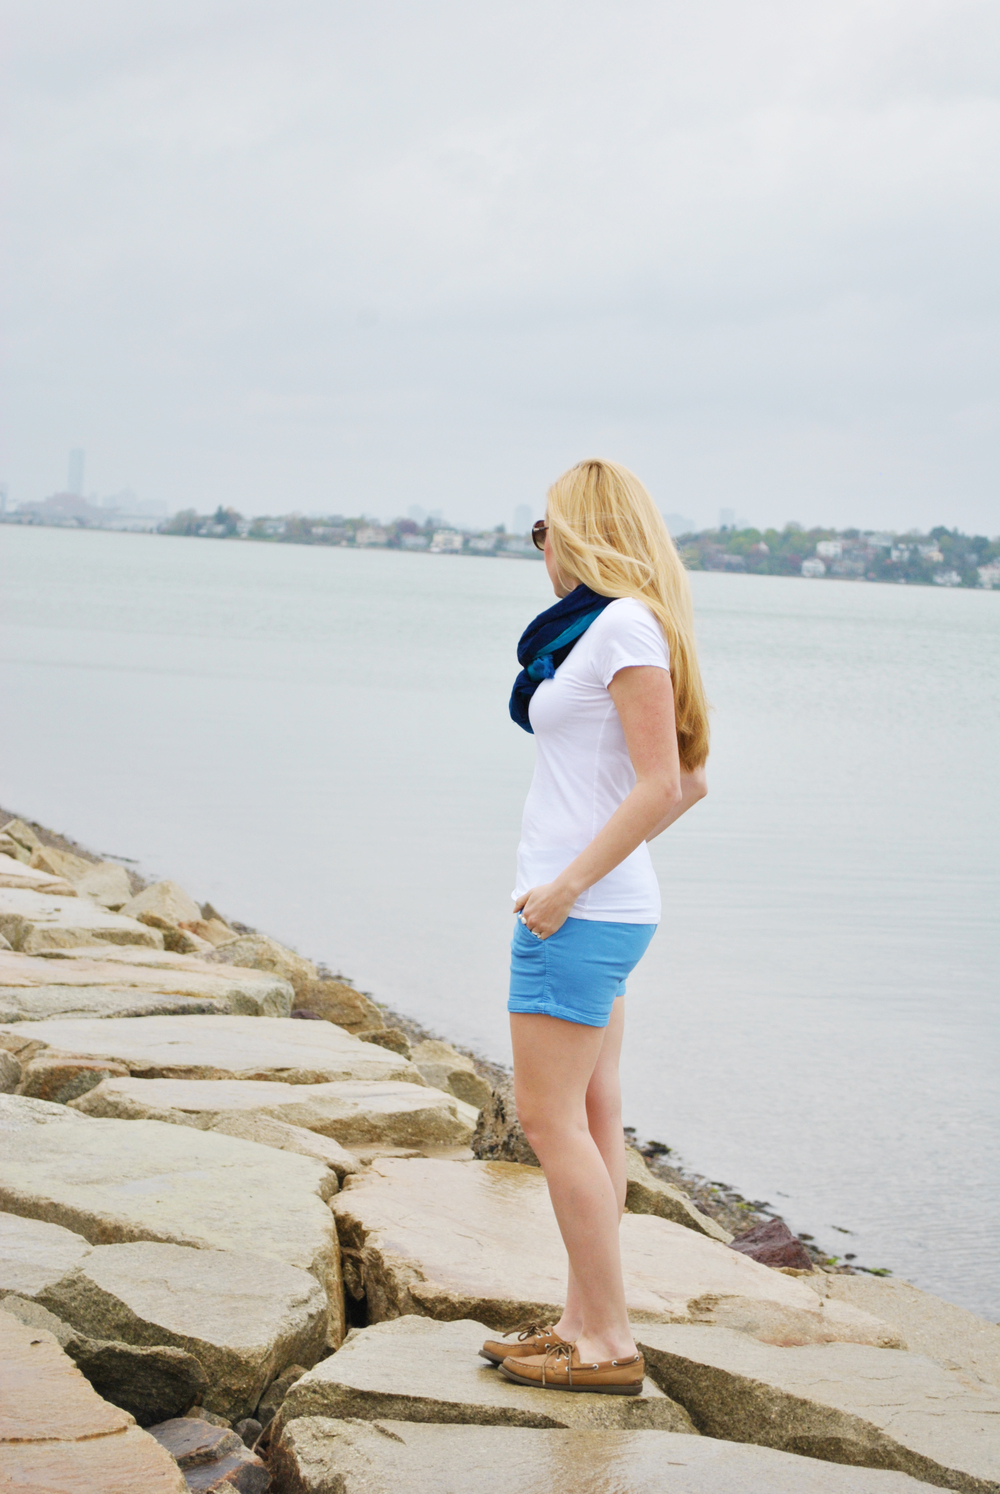 thoughtfulwish | summer // summer outfit // shorts // AEO // american eagle // blue // beach // preppy // boston // fashion blogger // meredith wish